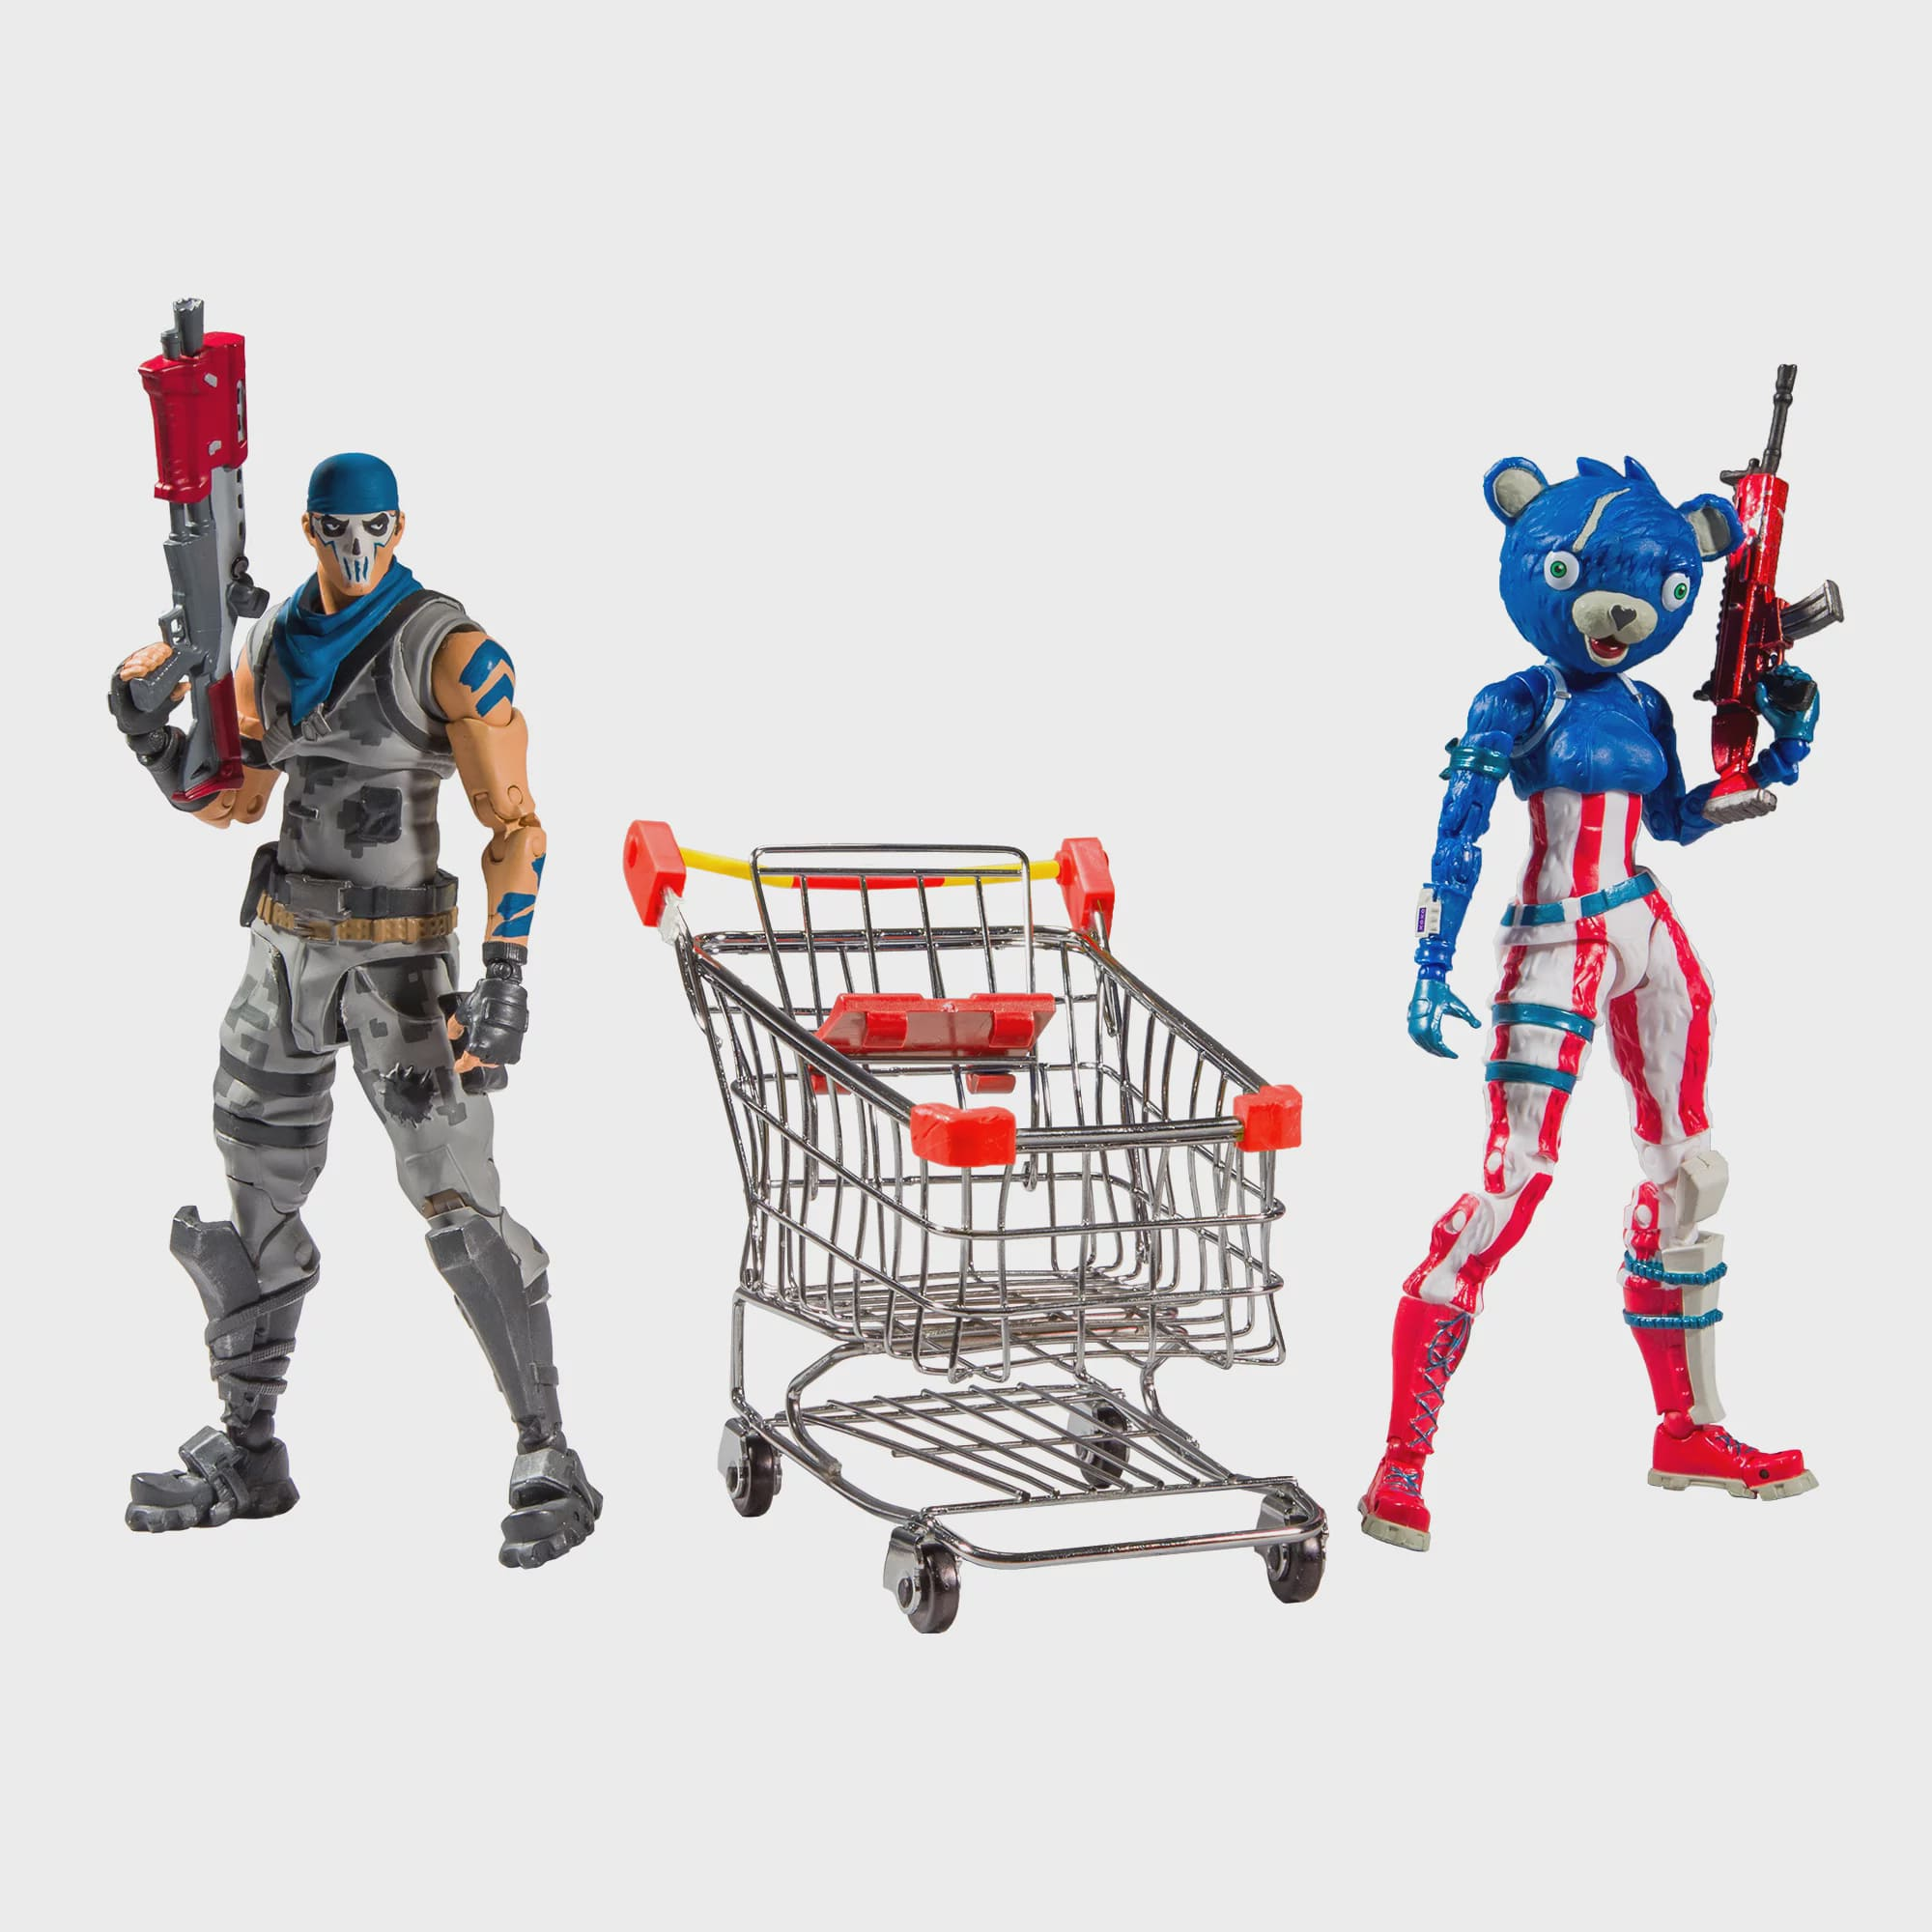 MCFARLANE - FORTNITE Shopping Cart Pack #1 with Warpaint and Fireworks Team Leader